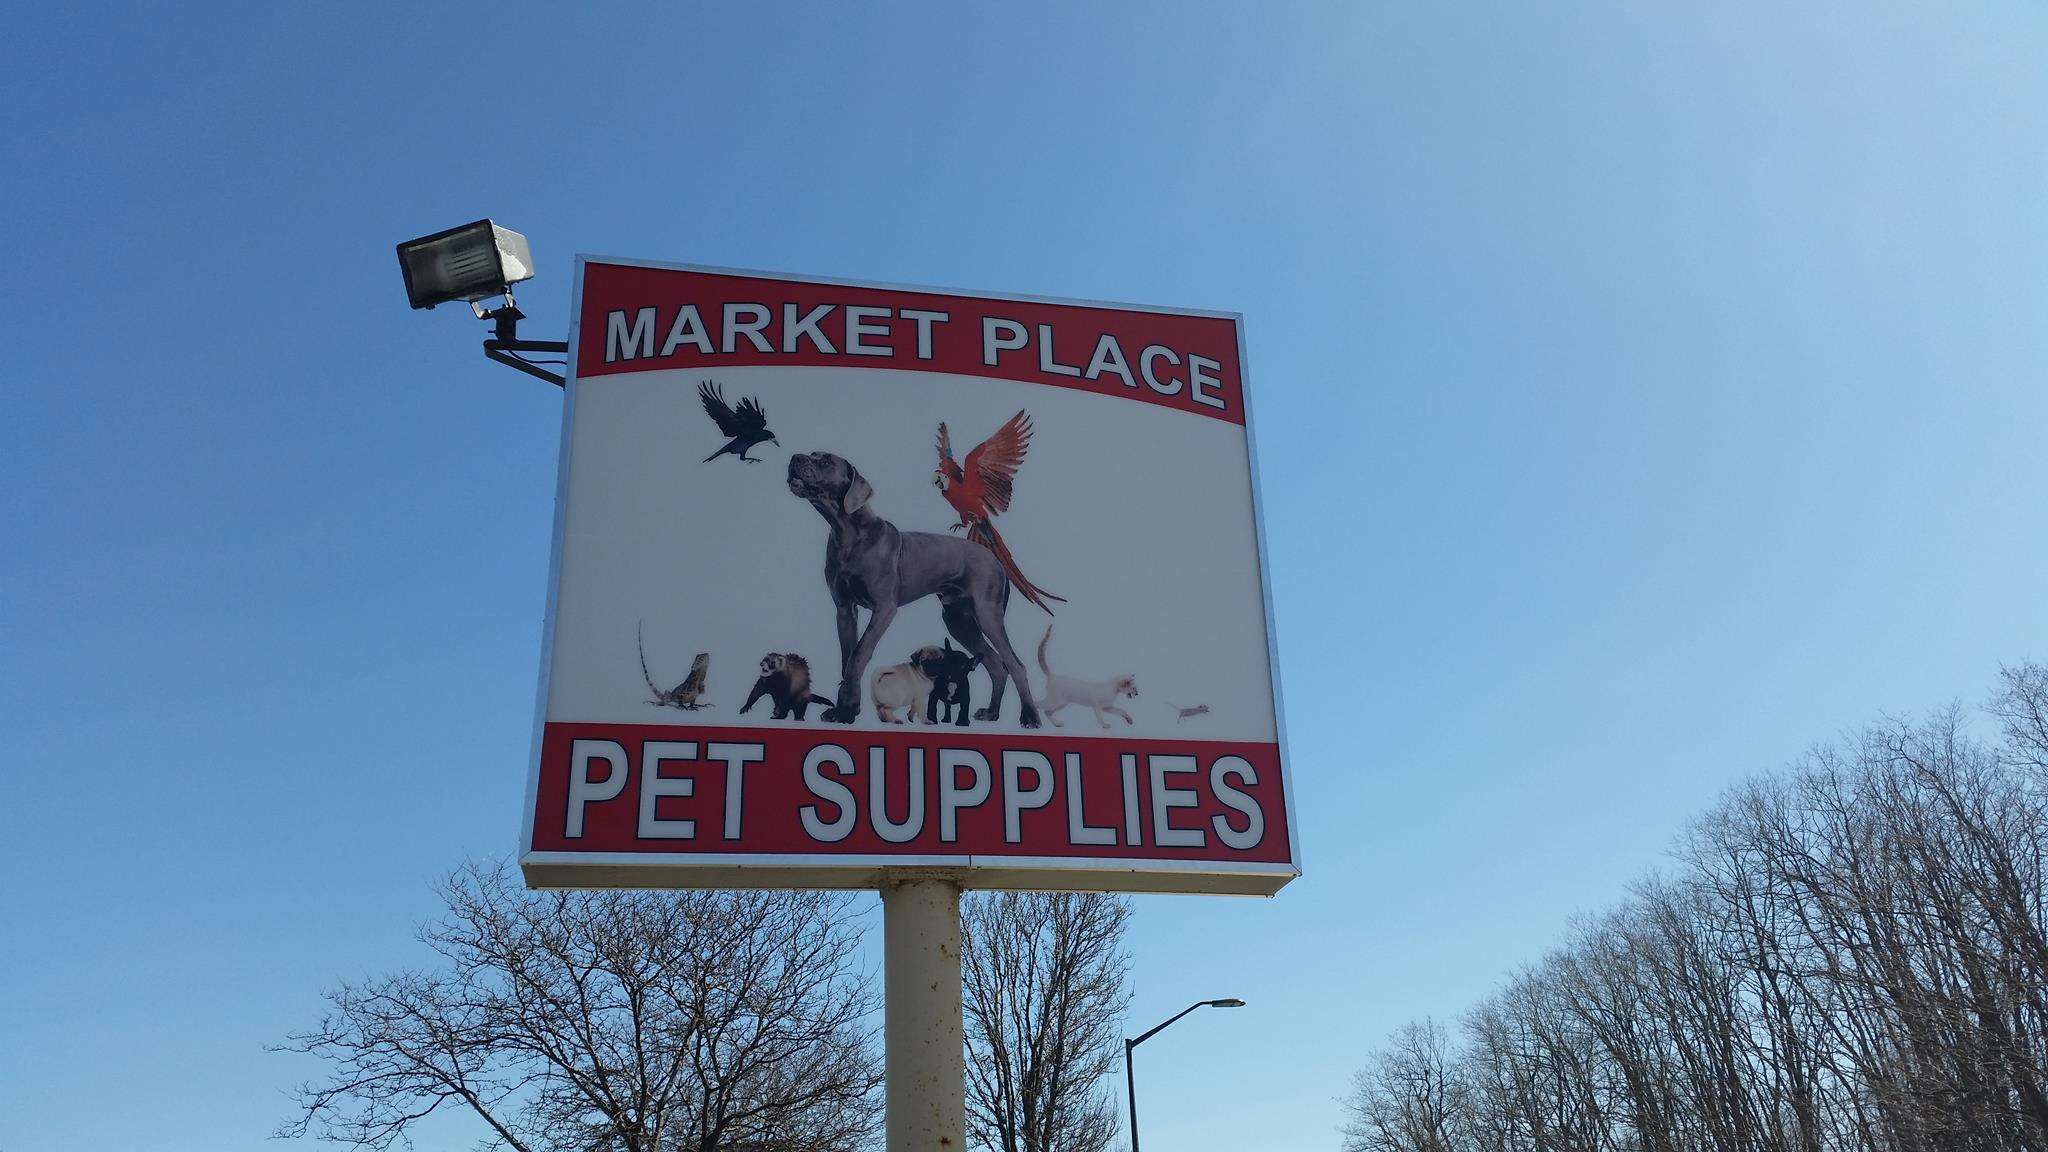 Market Place Pet Supplies